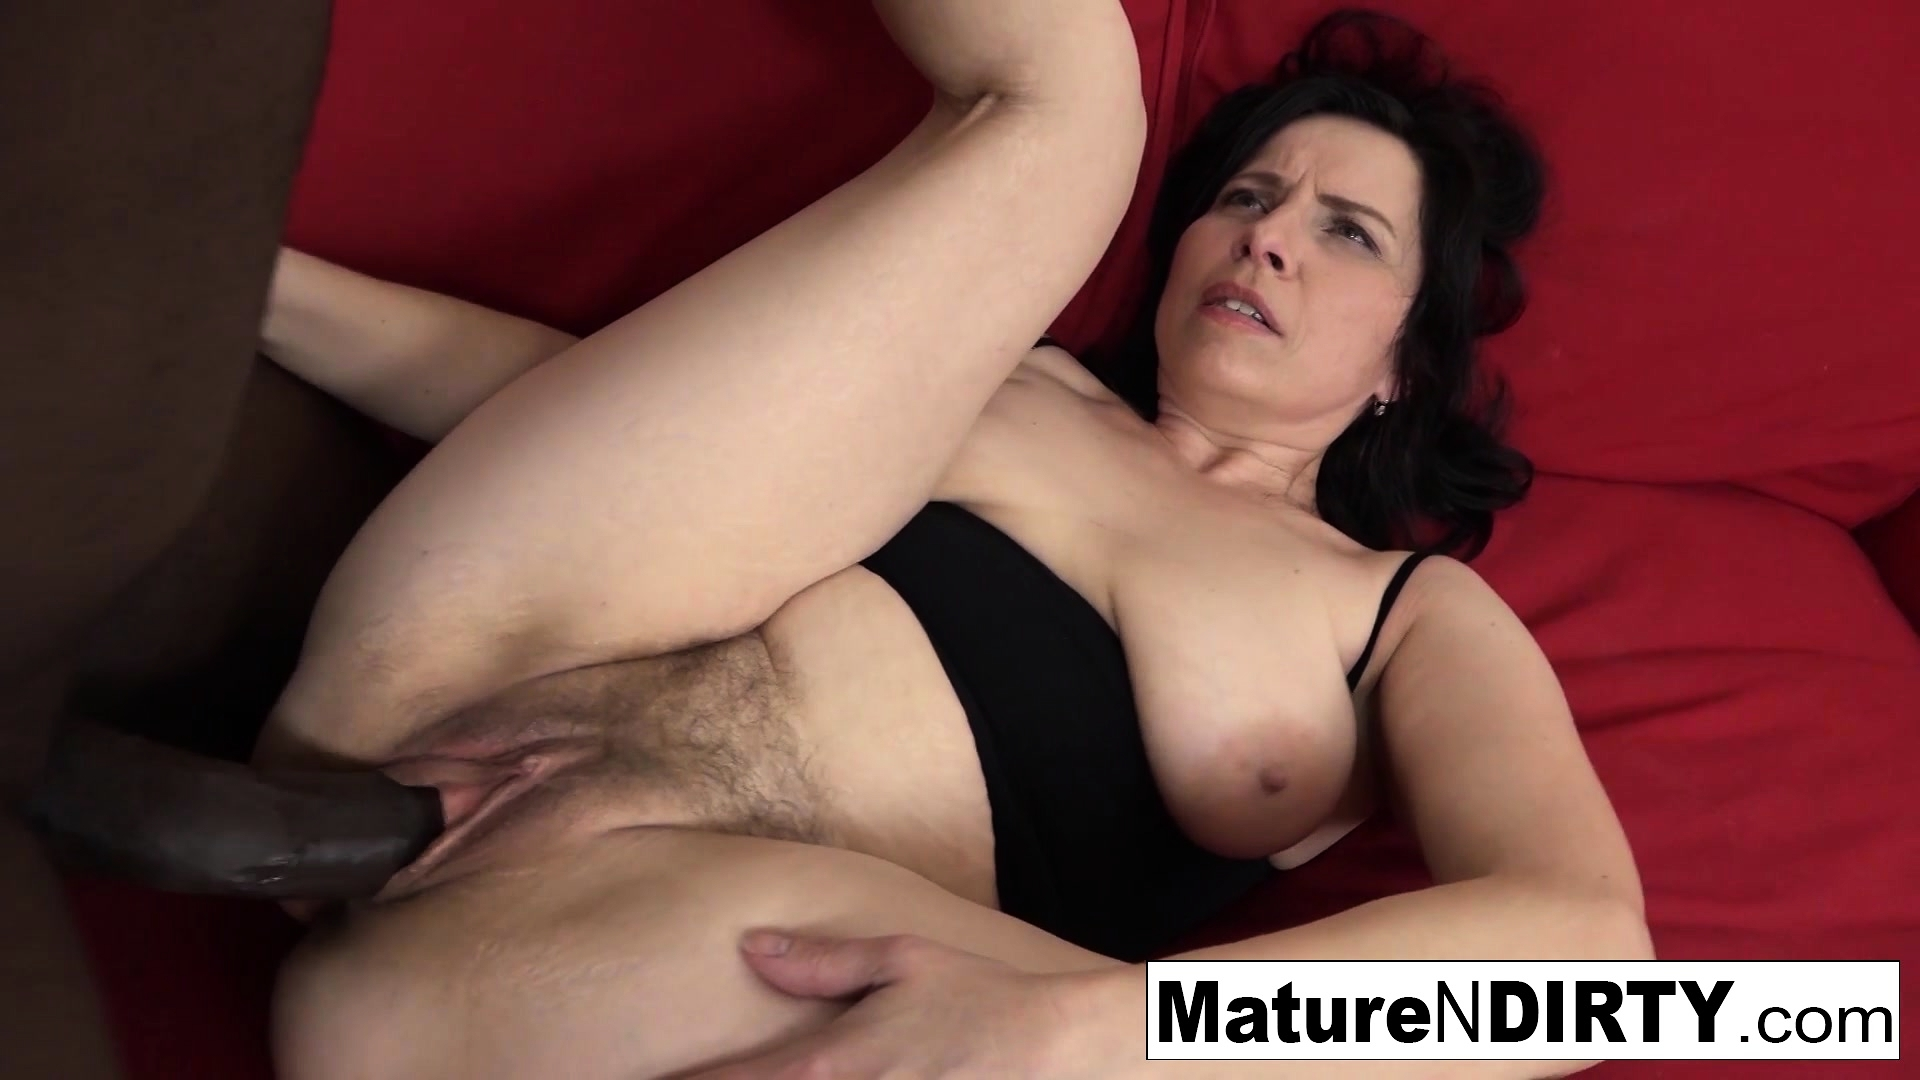 Lubed Threesome Hd Creampie